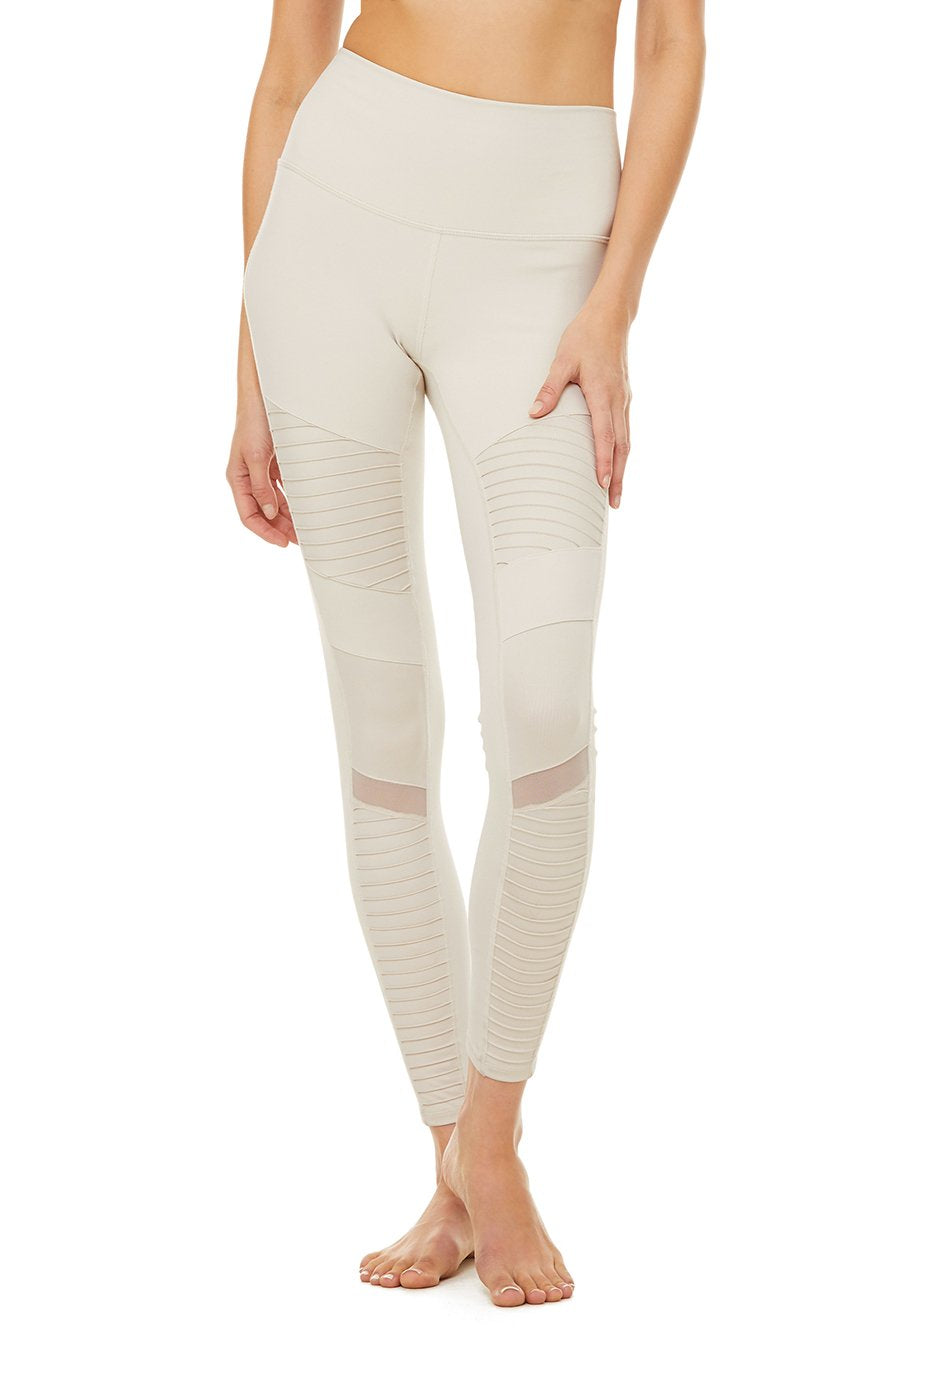 Alo Yoga XXS High-Waist Moto Legging - Bone Glossy